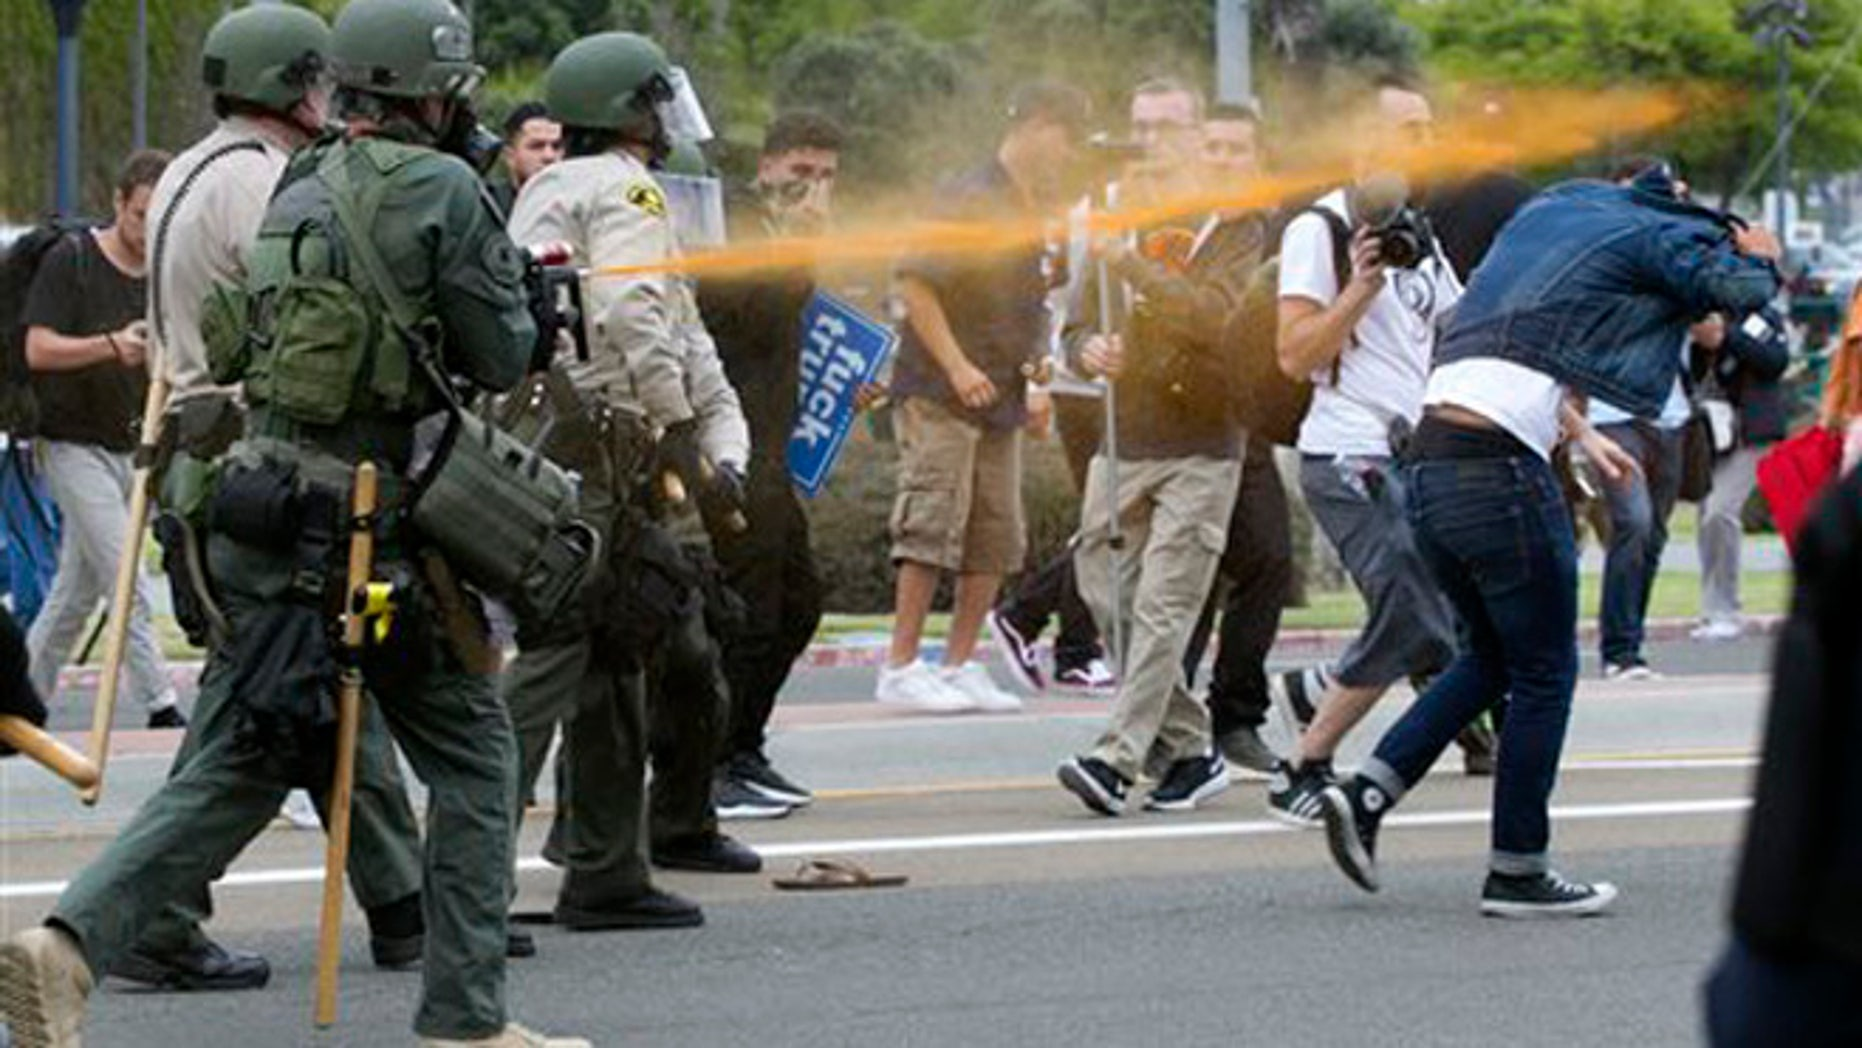 Police pepper sprayed protesters as they moved them down Harbor Drive in San Diego Friday, May 27, 2016. About a thousand Trump protesters demonstrated outside San Diego's convention center as Republican presidential candidate Donald Trump spoke inside to an enthusiastic crowd of supporters packed in tight. Several protesters were arrested.  (John Gibbins/The San Diego Union-Tribune via AP)  NO SALES; MANDATORY CREDIT